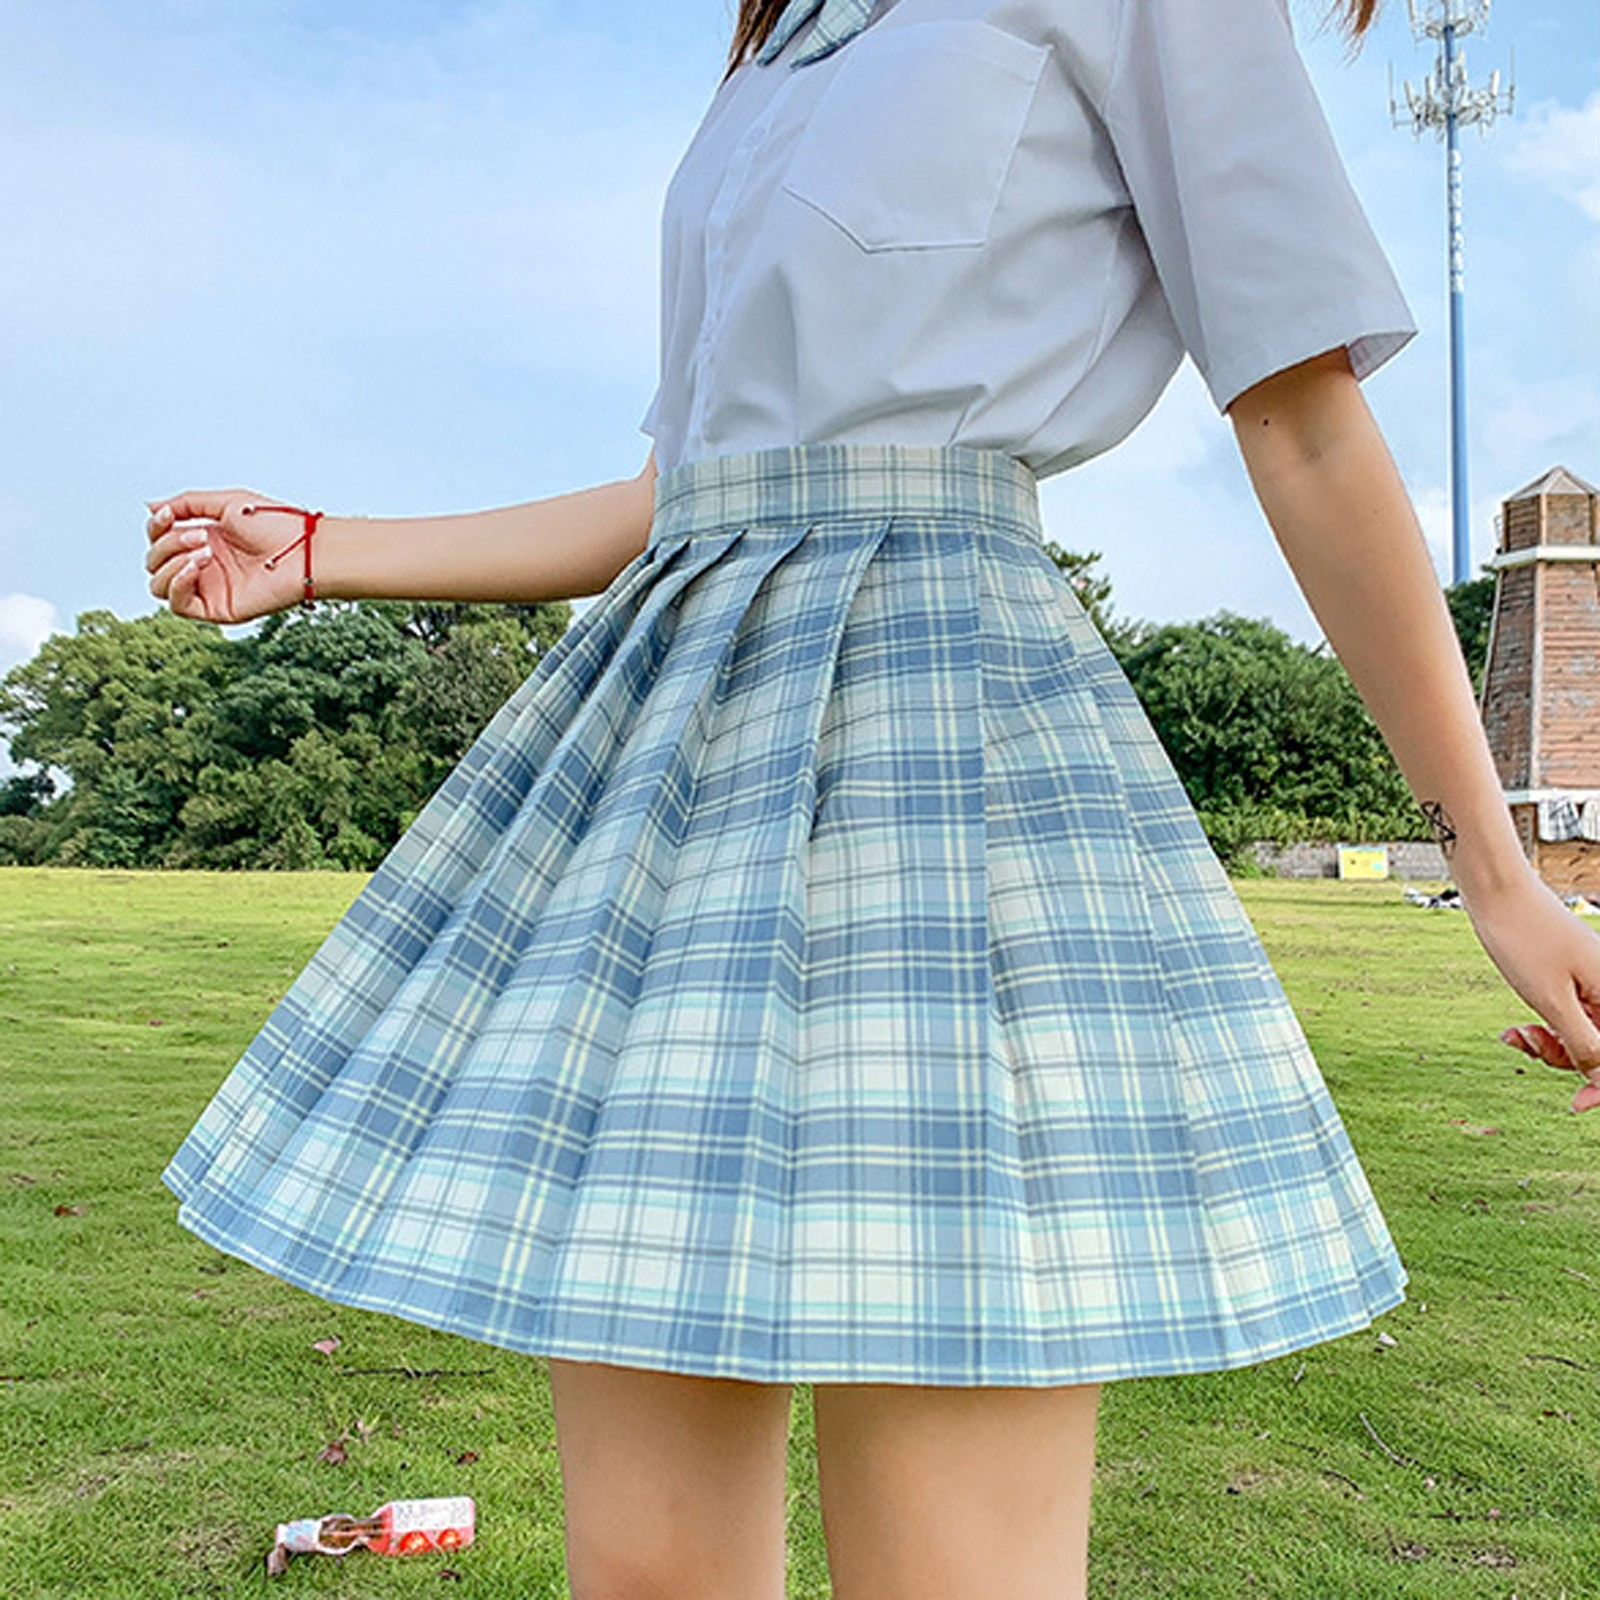 New Women Fashion Casual School Plaid Uniform Skirt Pleated High Waist Skirt Academic Style A-line Mini Skirts Mujer Faldas